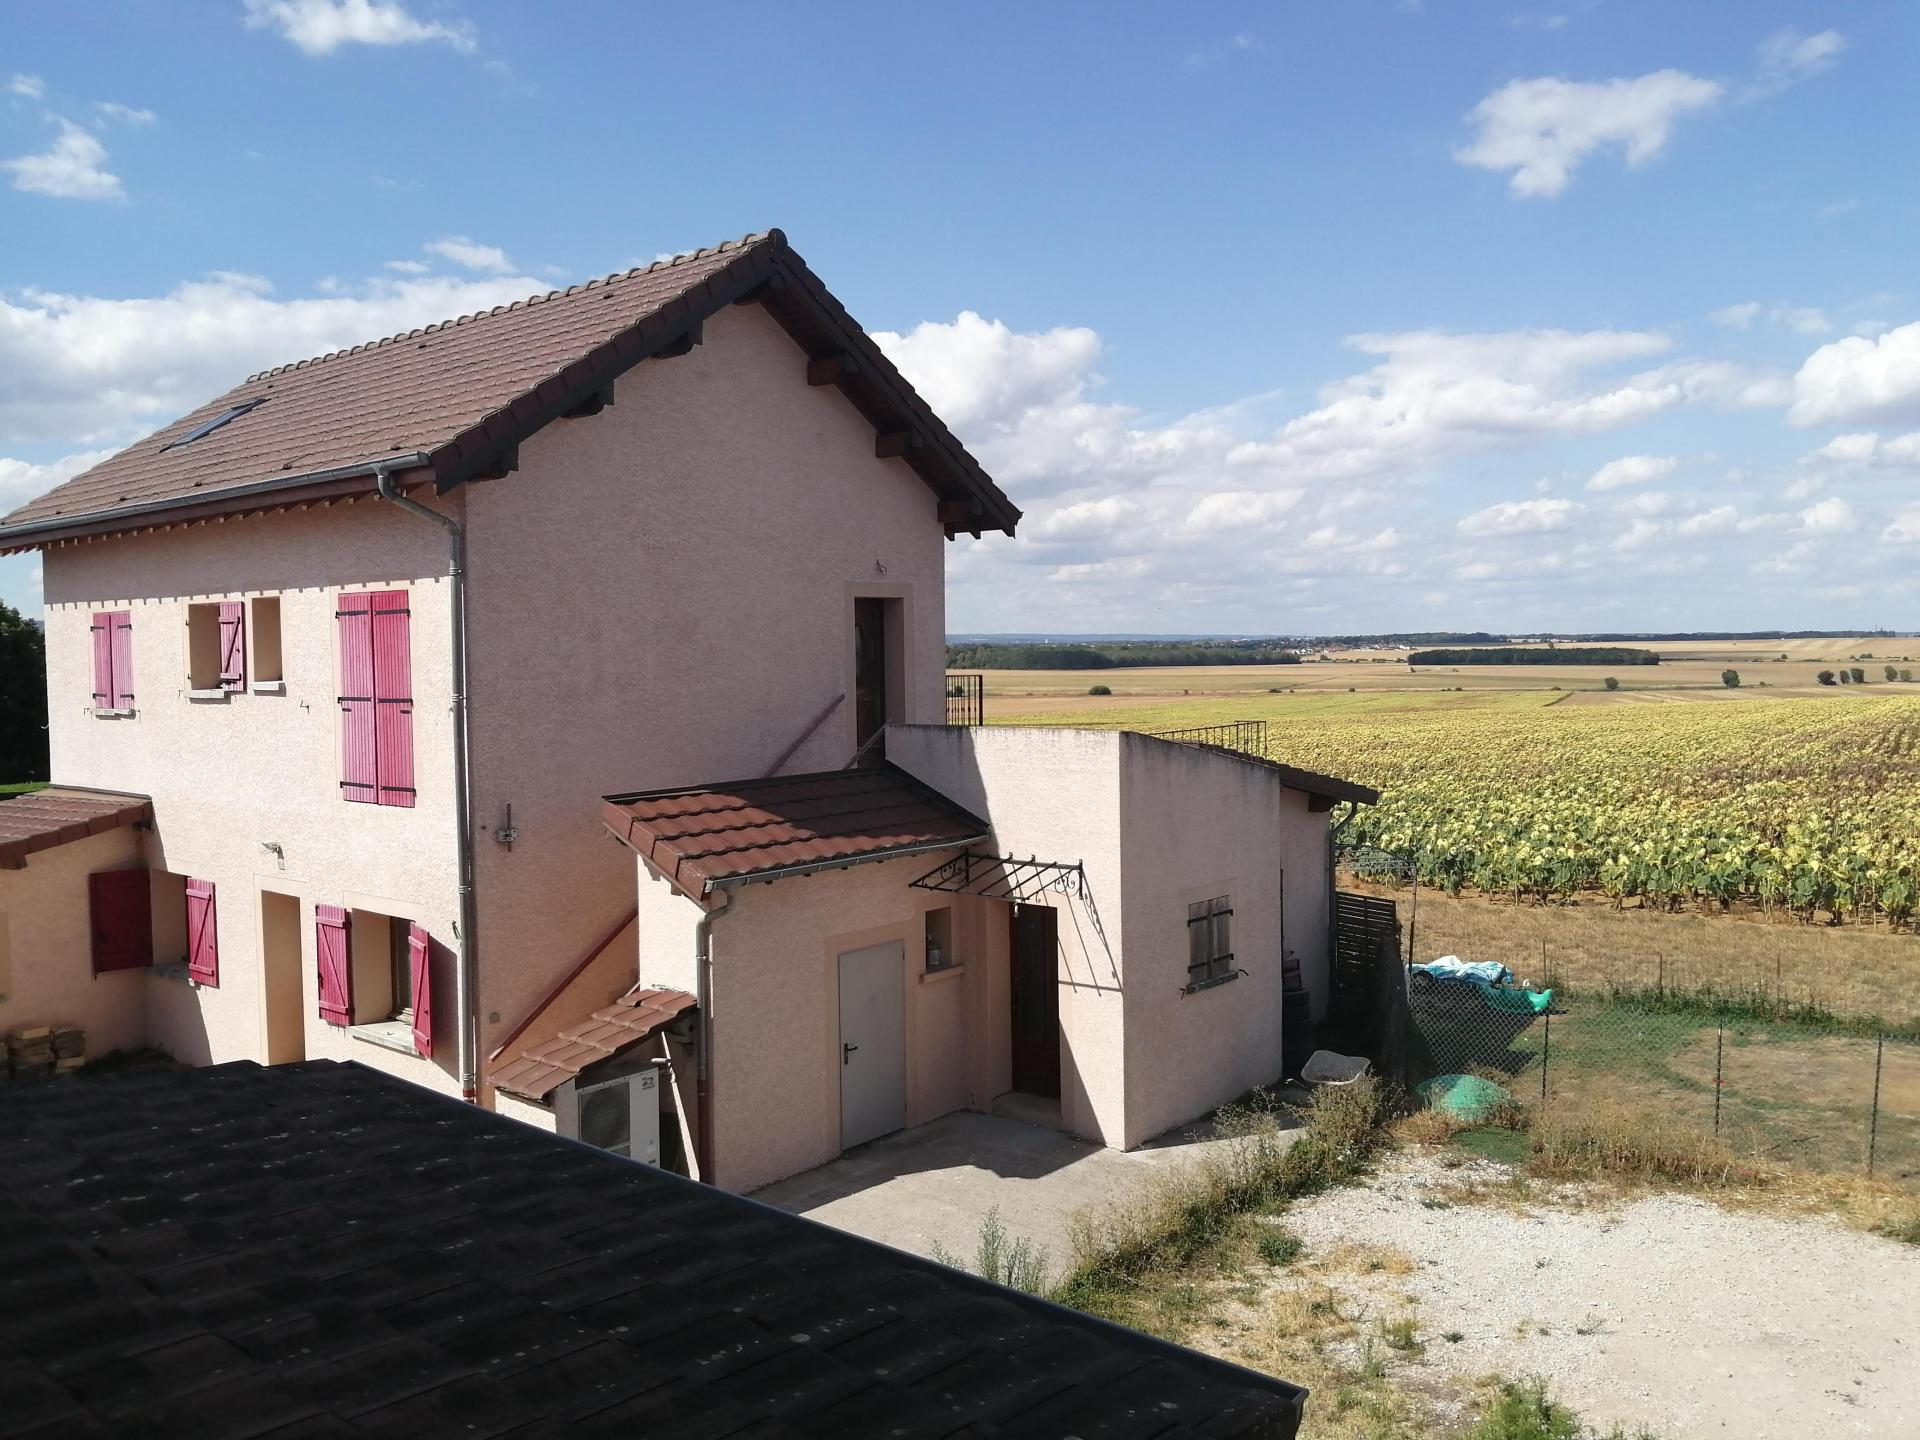 BEL ENSEMBLE IMMOBILIER A 20 MN DE DIJON - IDEAL INVESTISSEMENT LOCATIF